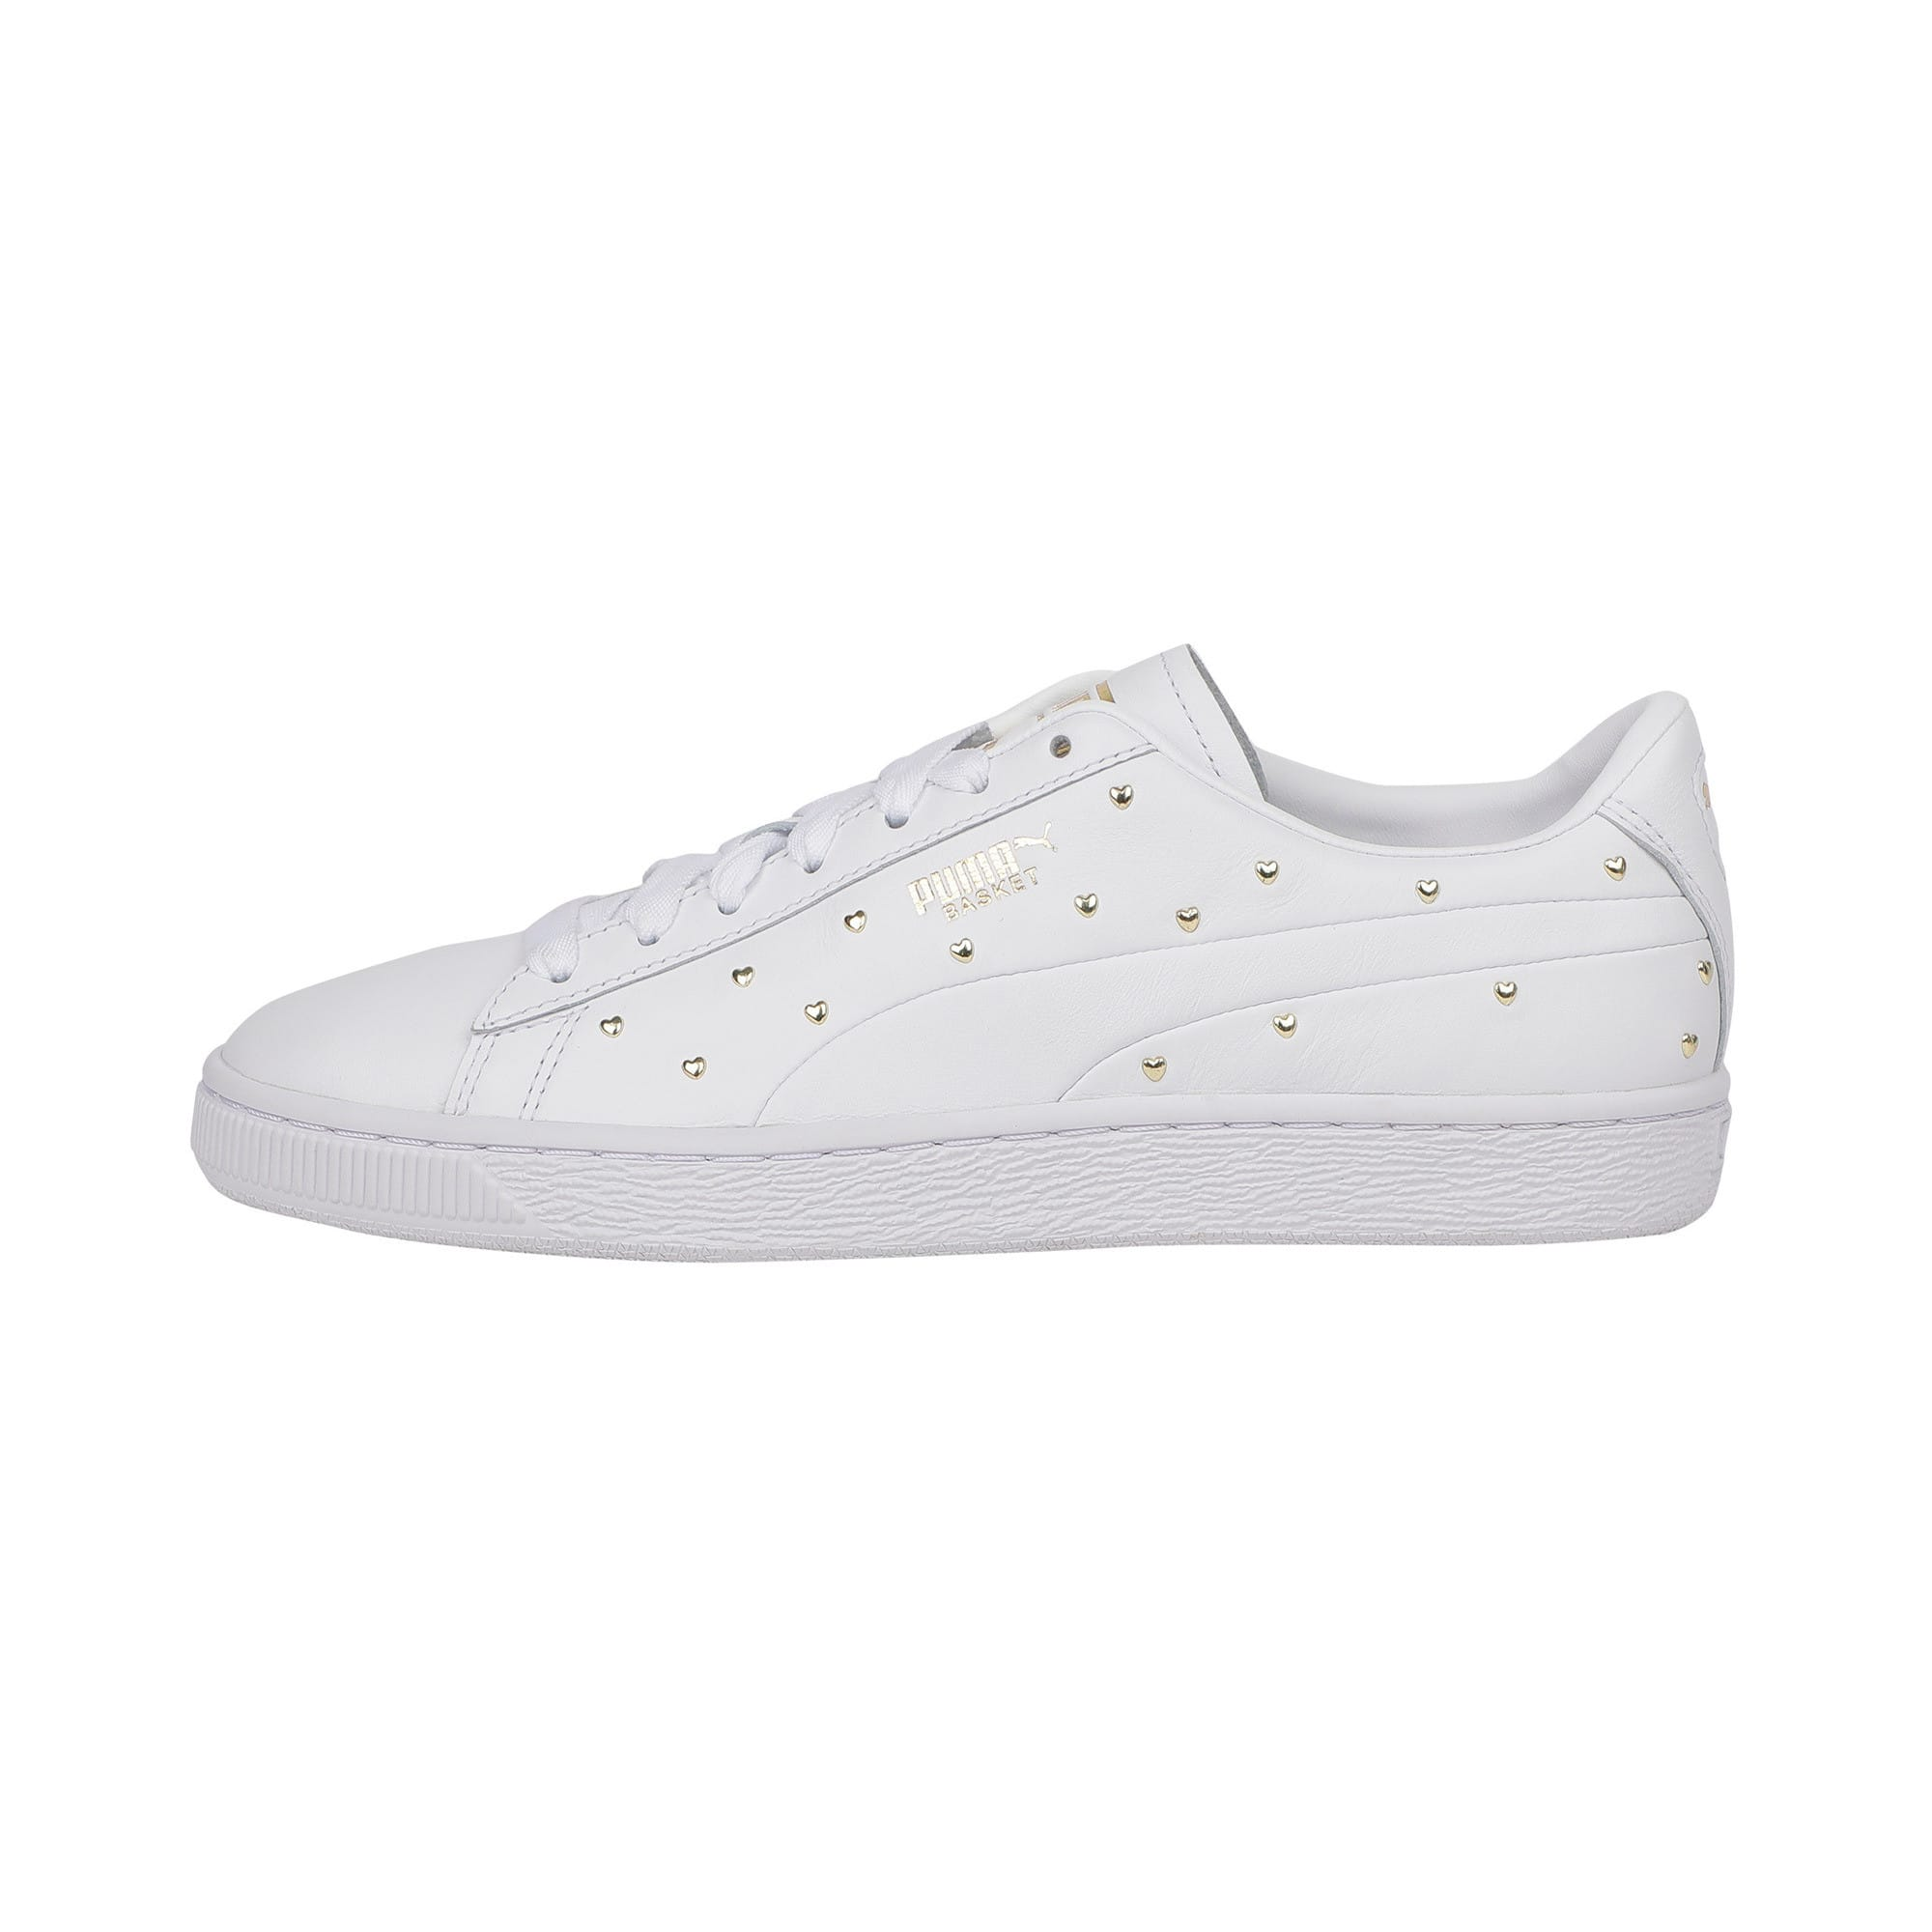 Thumbnail 1 of Basket Studs Women's Trainers, Puma White-Puma Team Gold, medium-IND